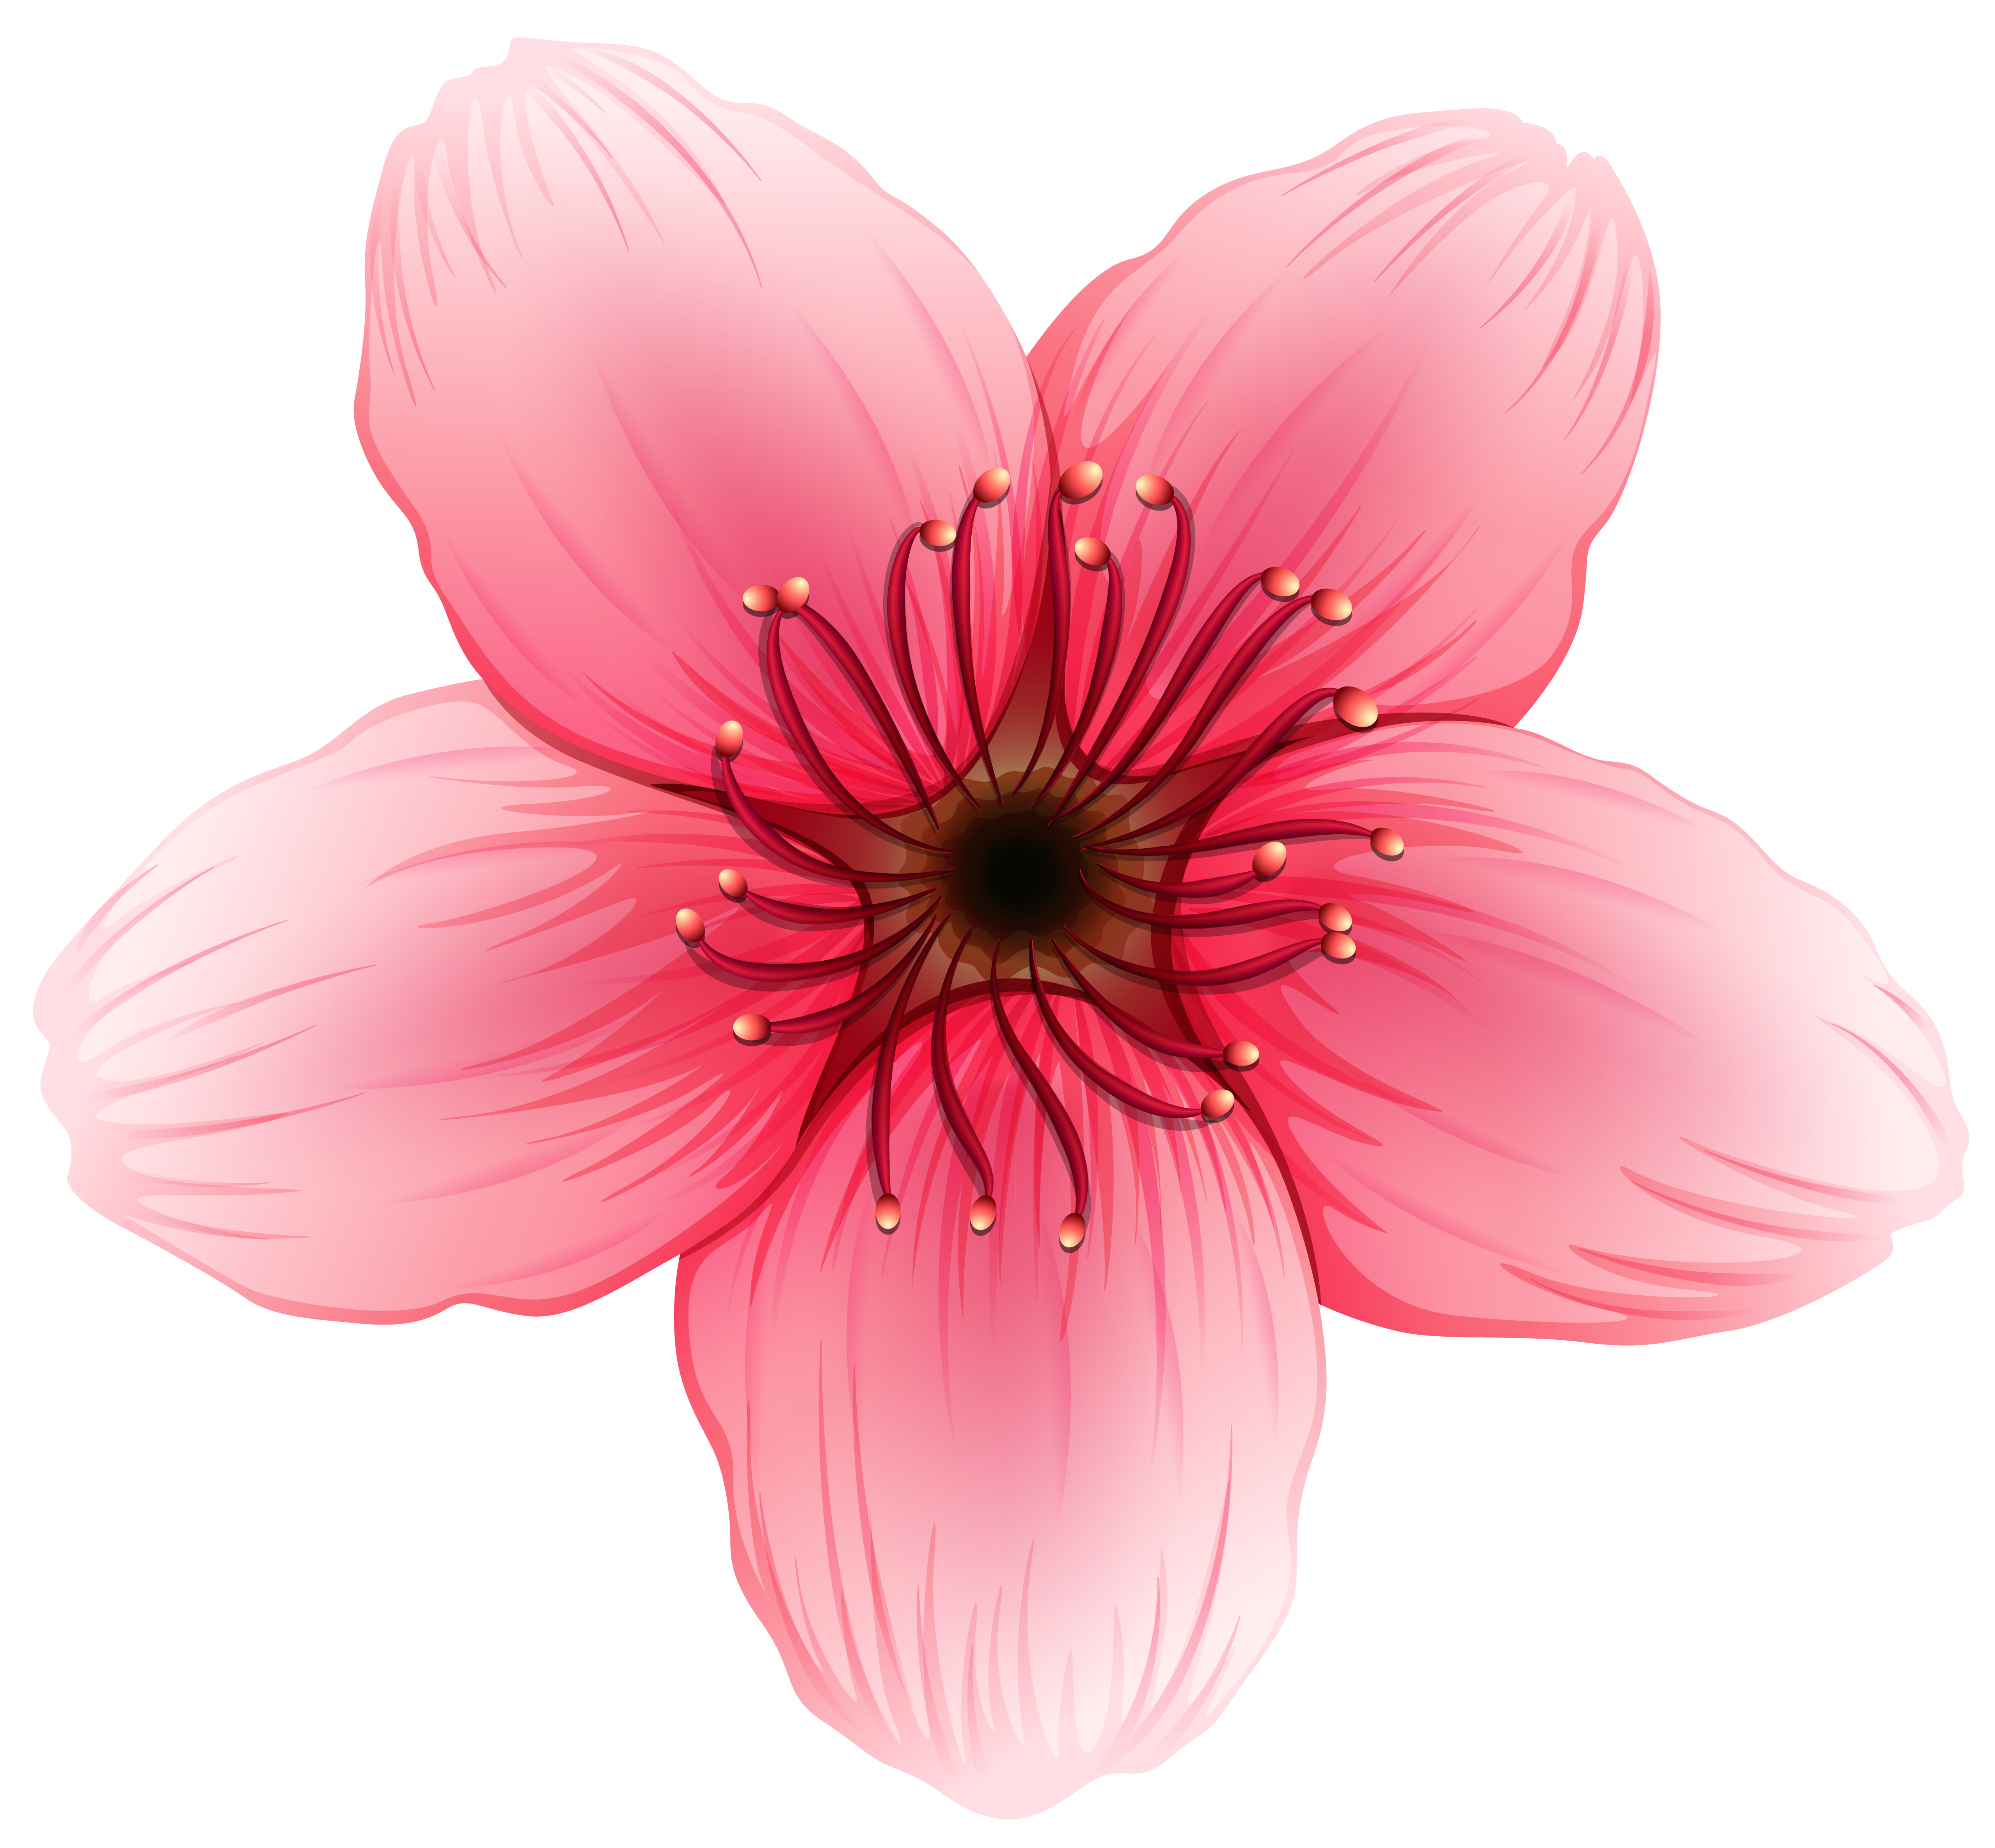 Clipart flower png vector free stock Flower PNG Clipart Image vector free stock